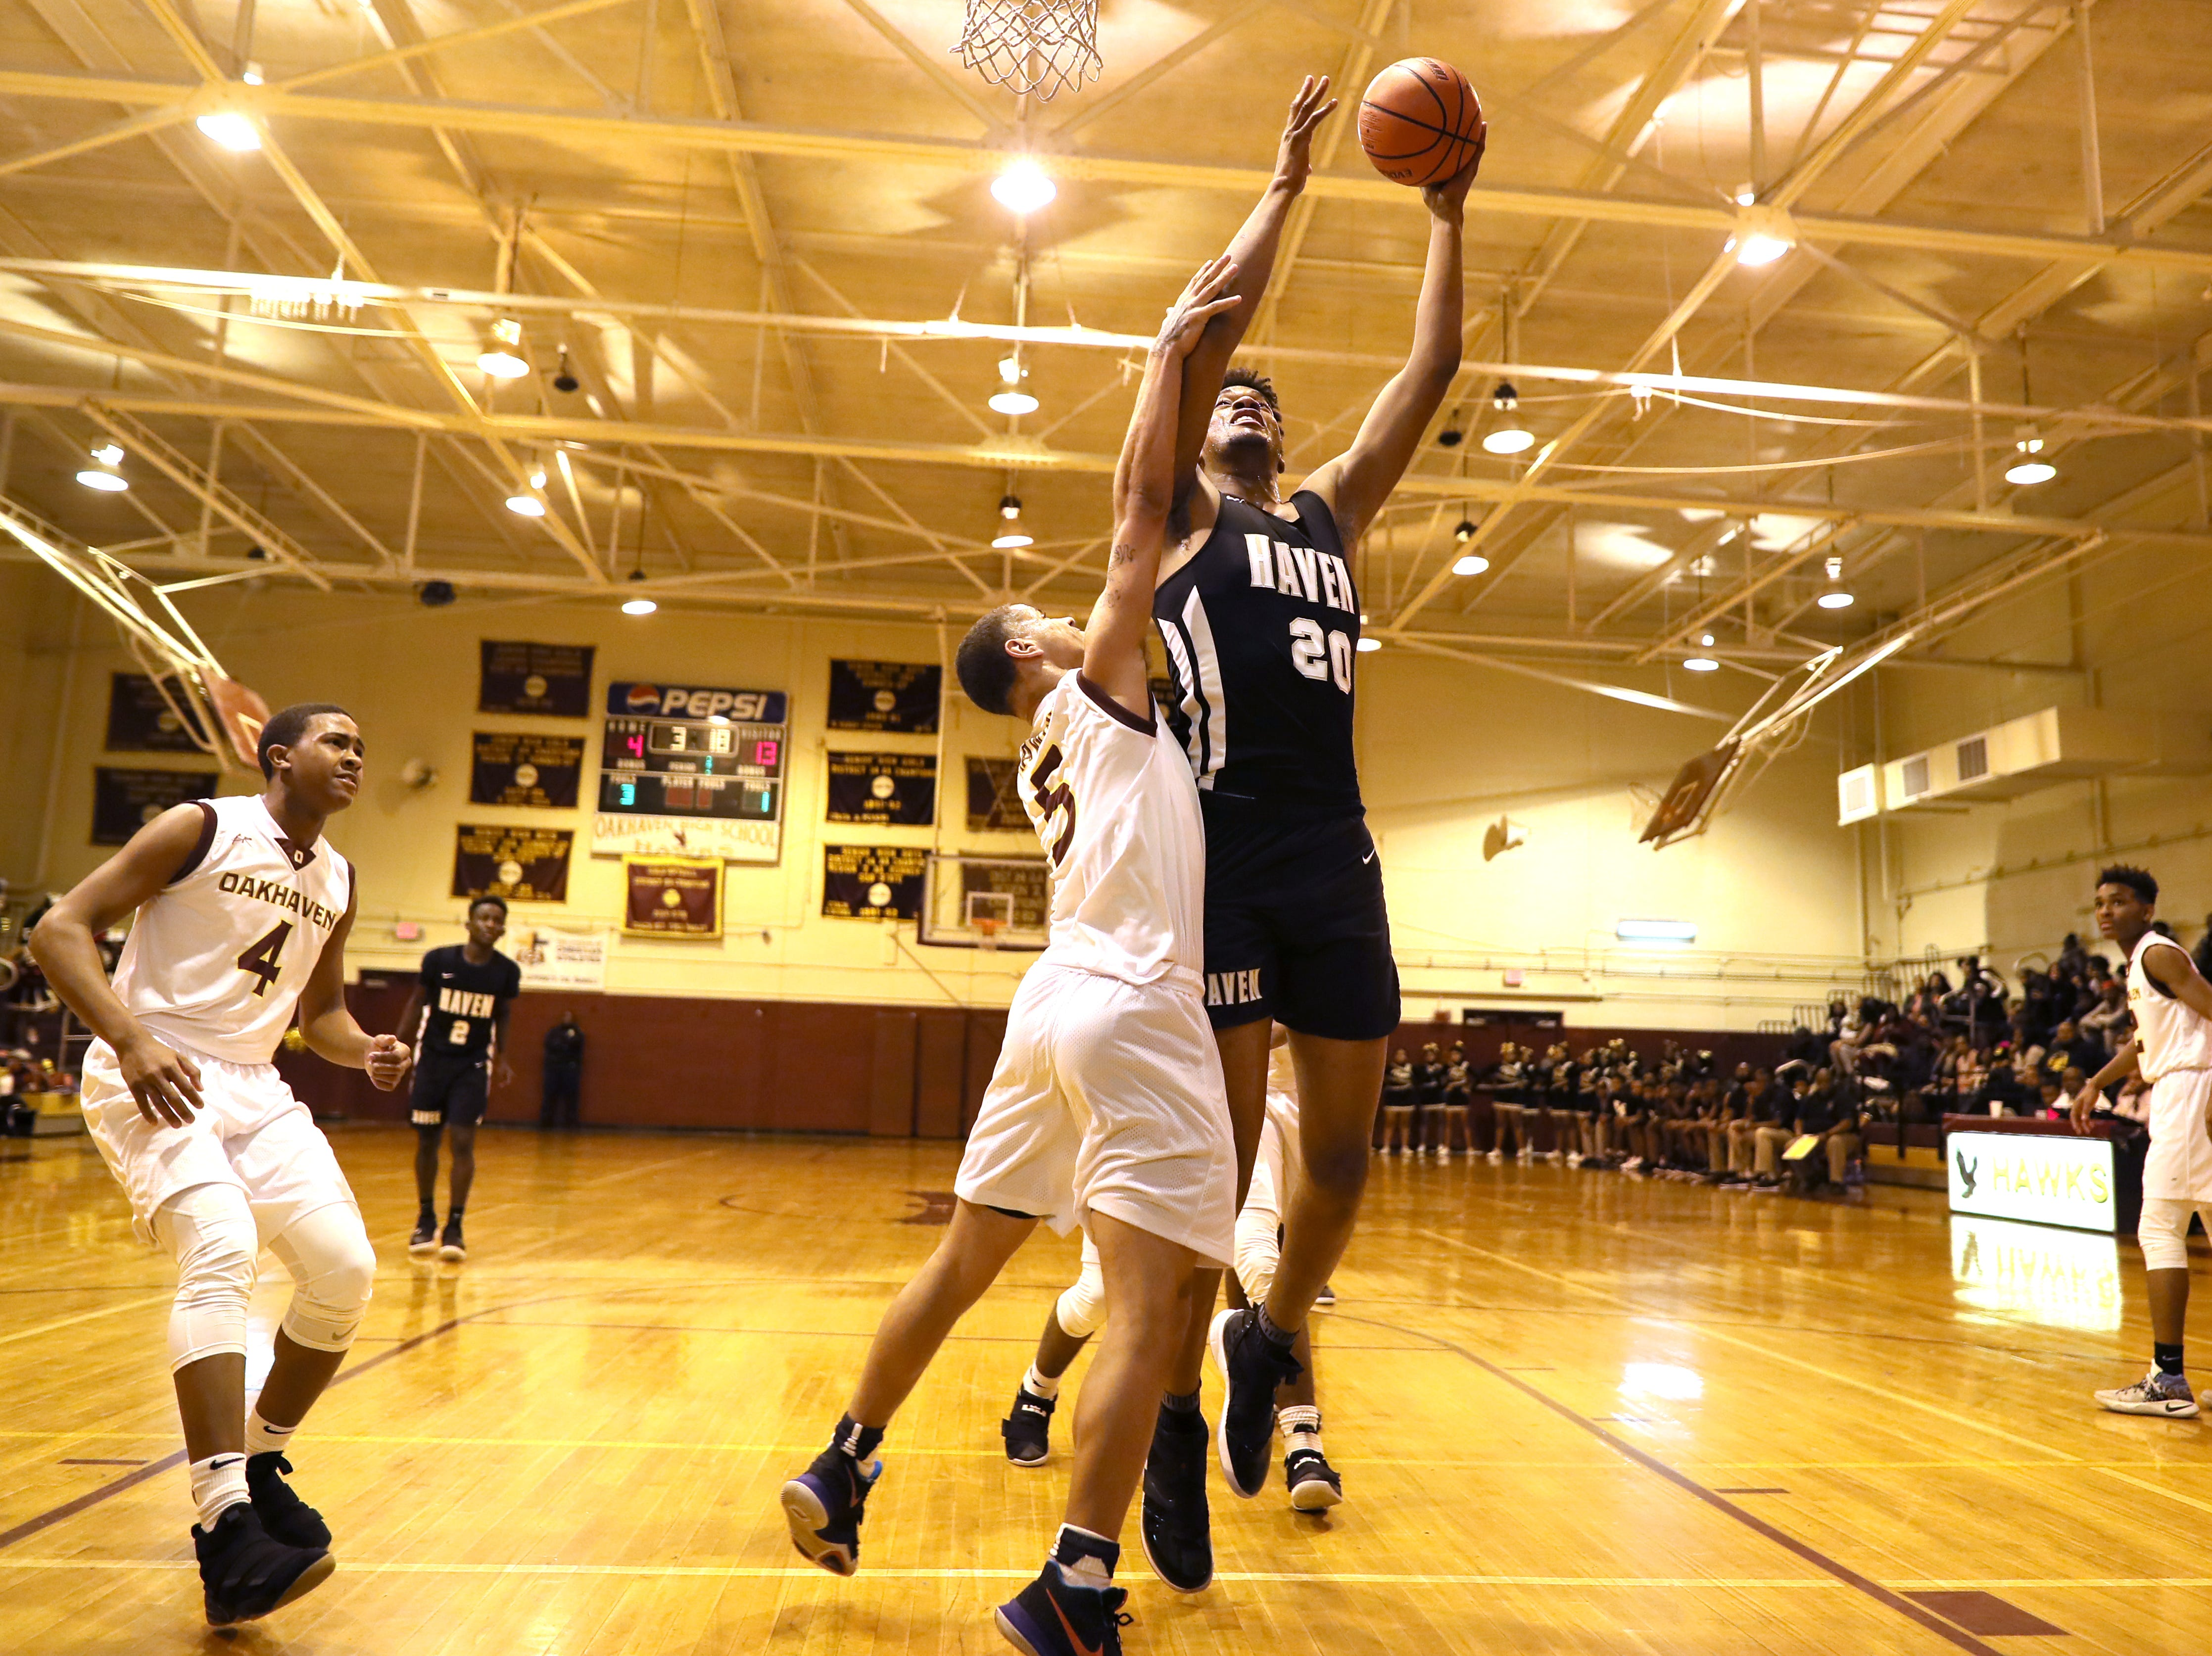 Whitehaven's Jordan Wilmore shoots the ball over Oakhaven's Cameron Howard during their game at Oakhaven High School on Thursday, Jan. 10, 2019.